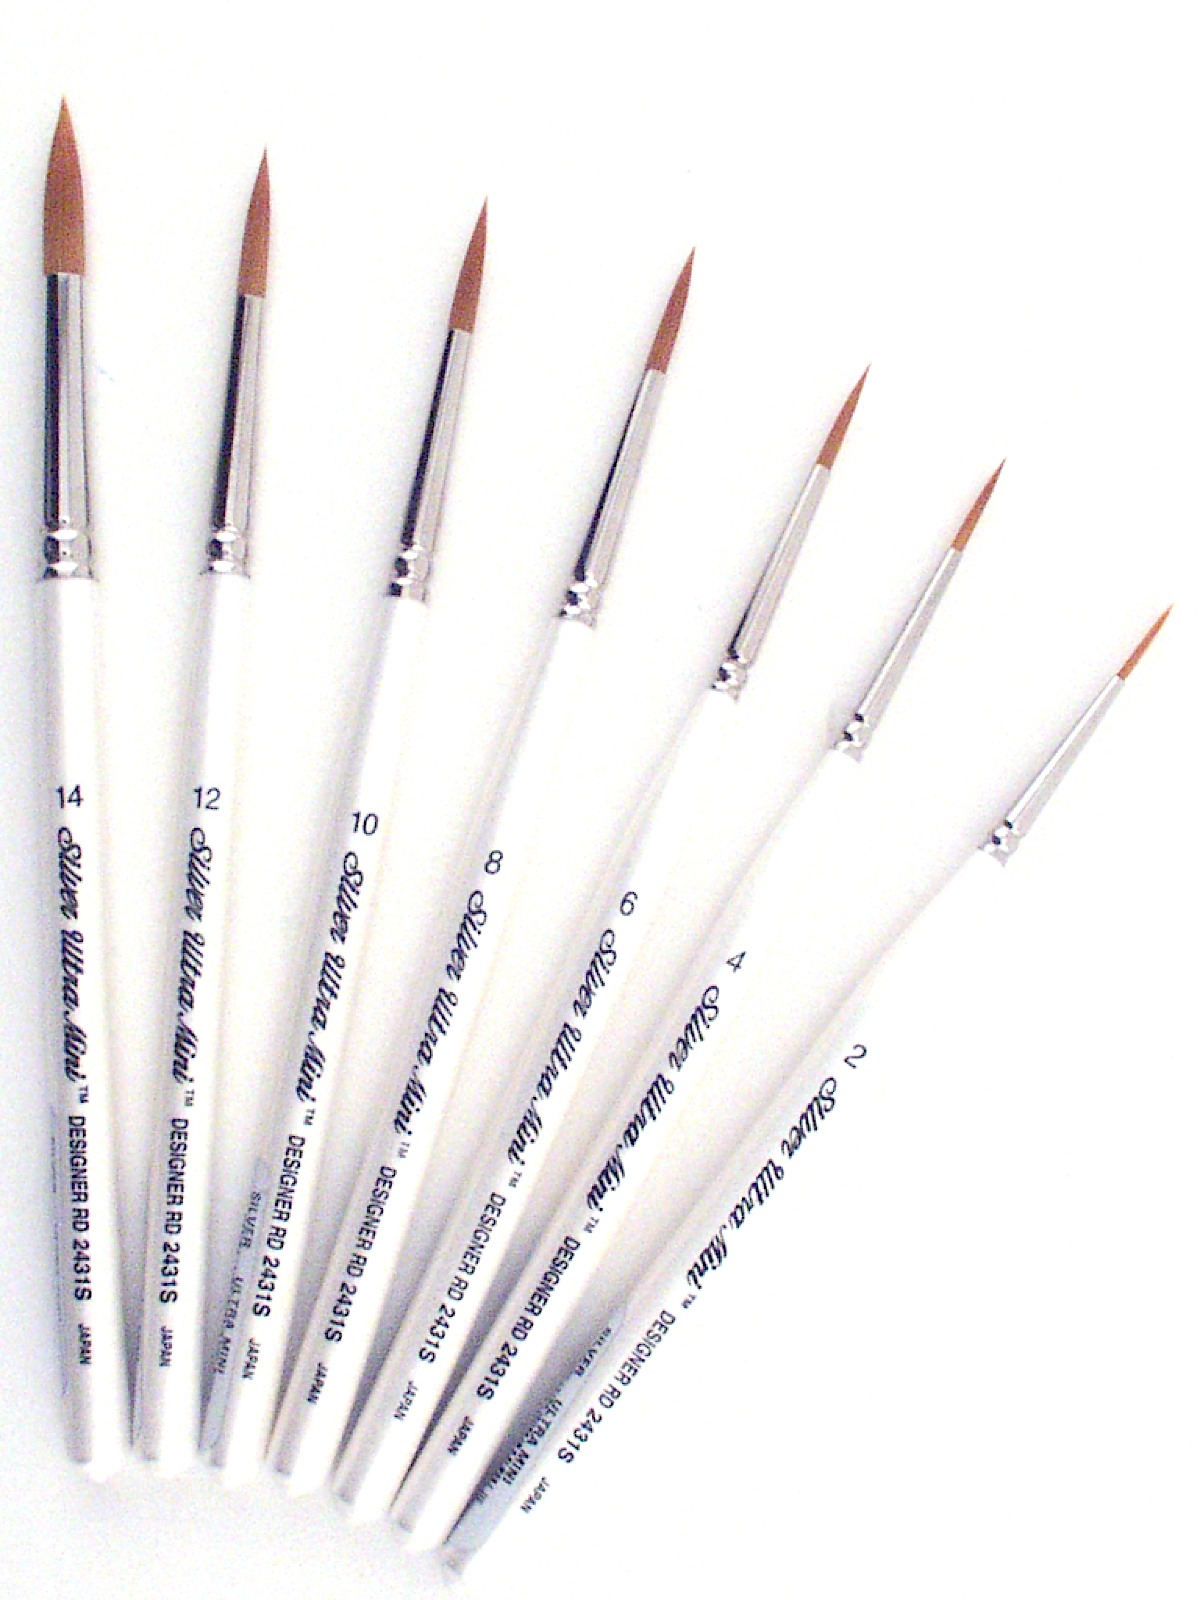 Silver Brush Ultra Mini Series Golden Taklon Brushes